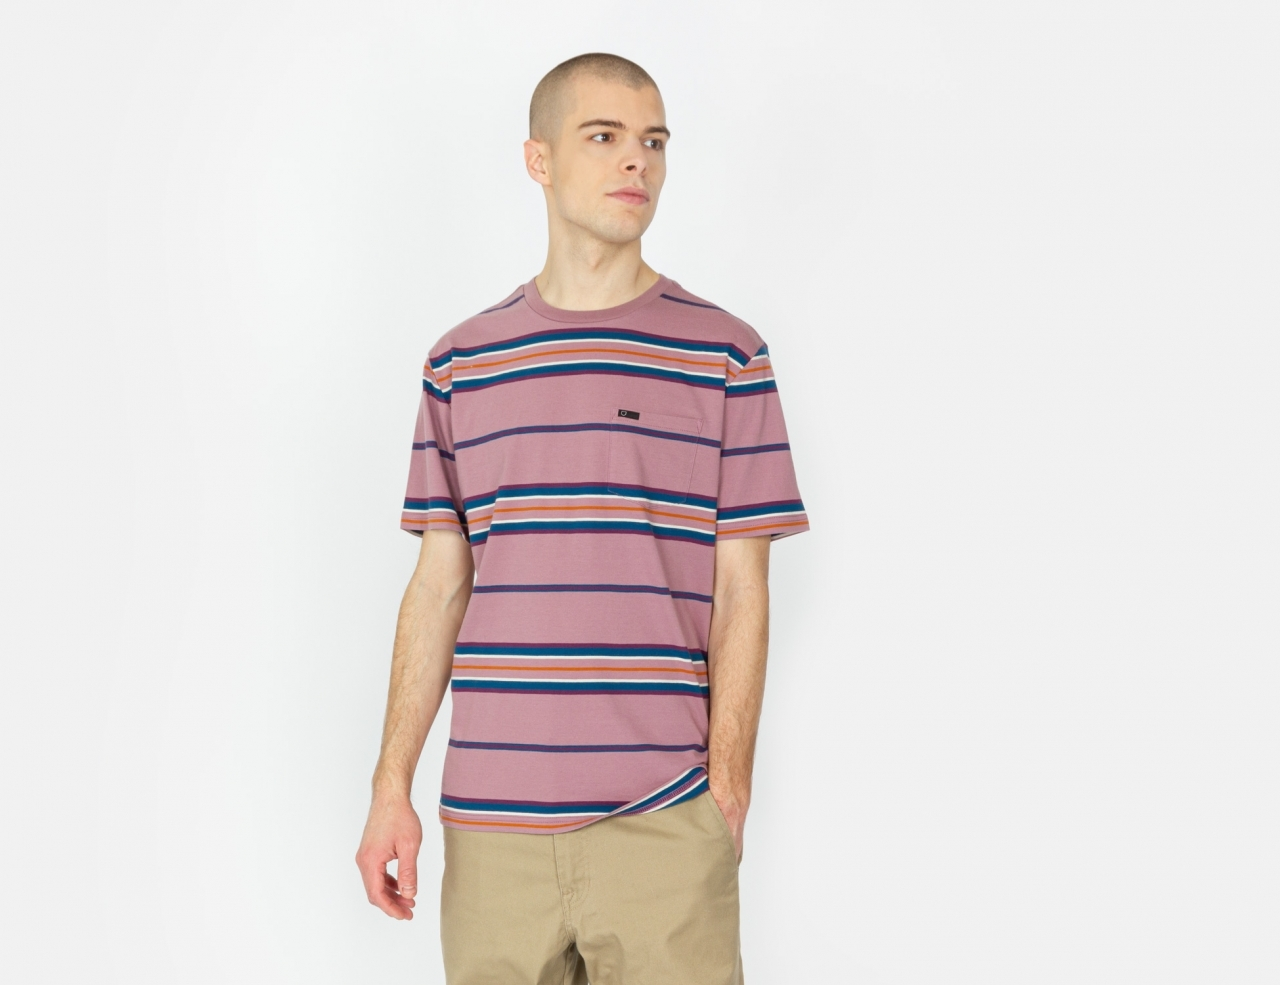 Brixton Hilt Knit T-Shirt - Washed Concord